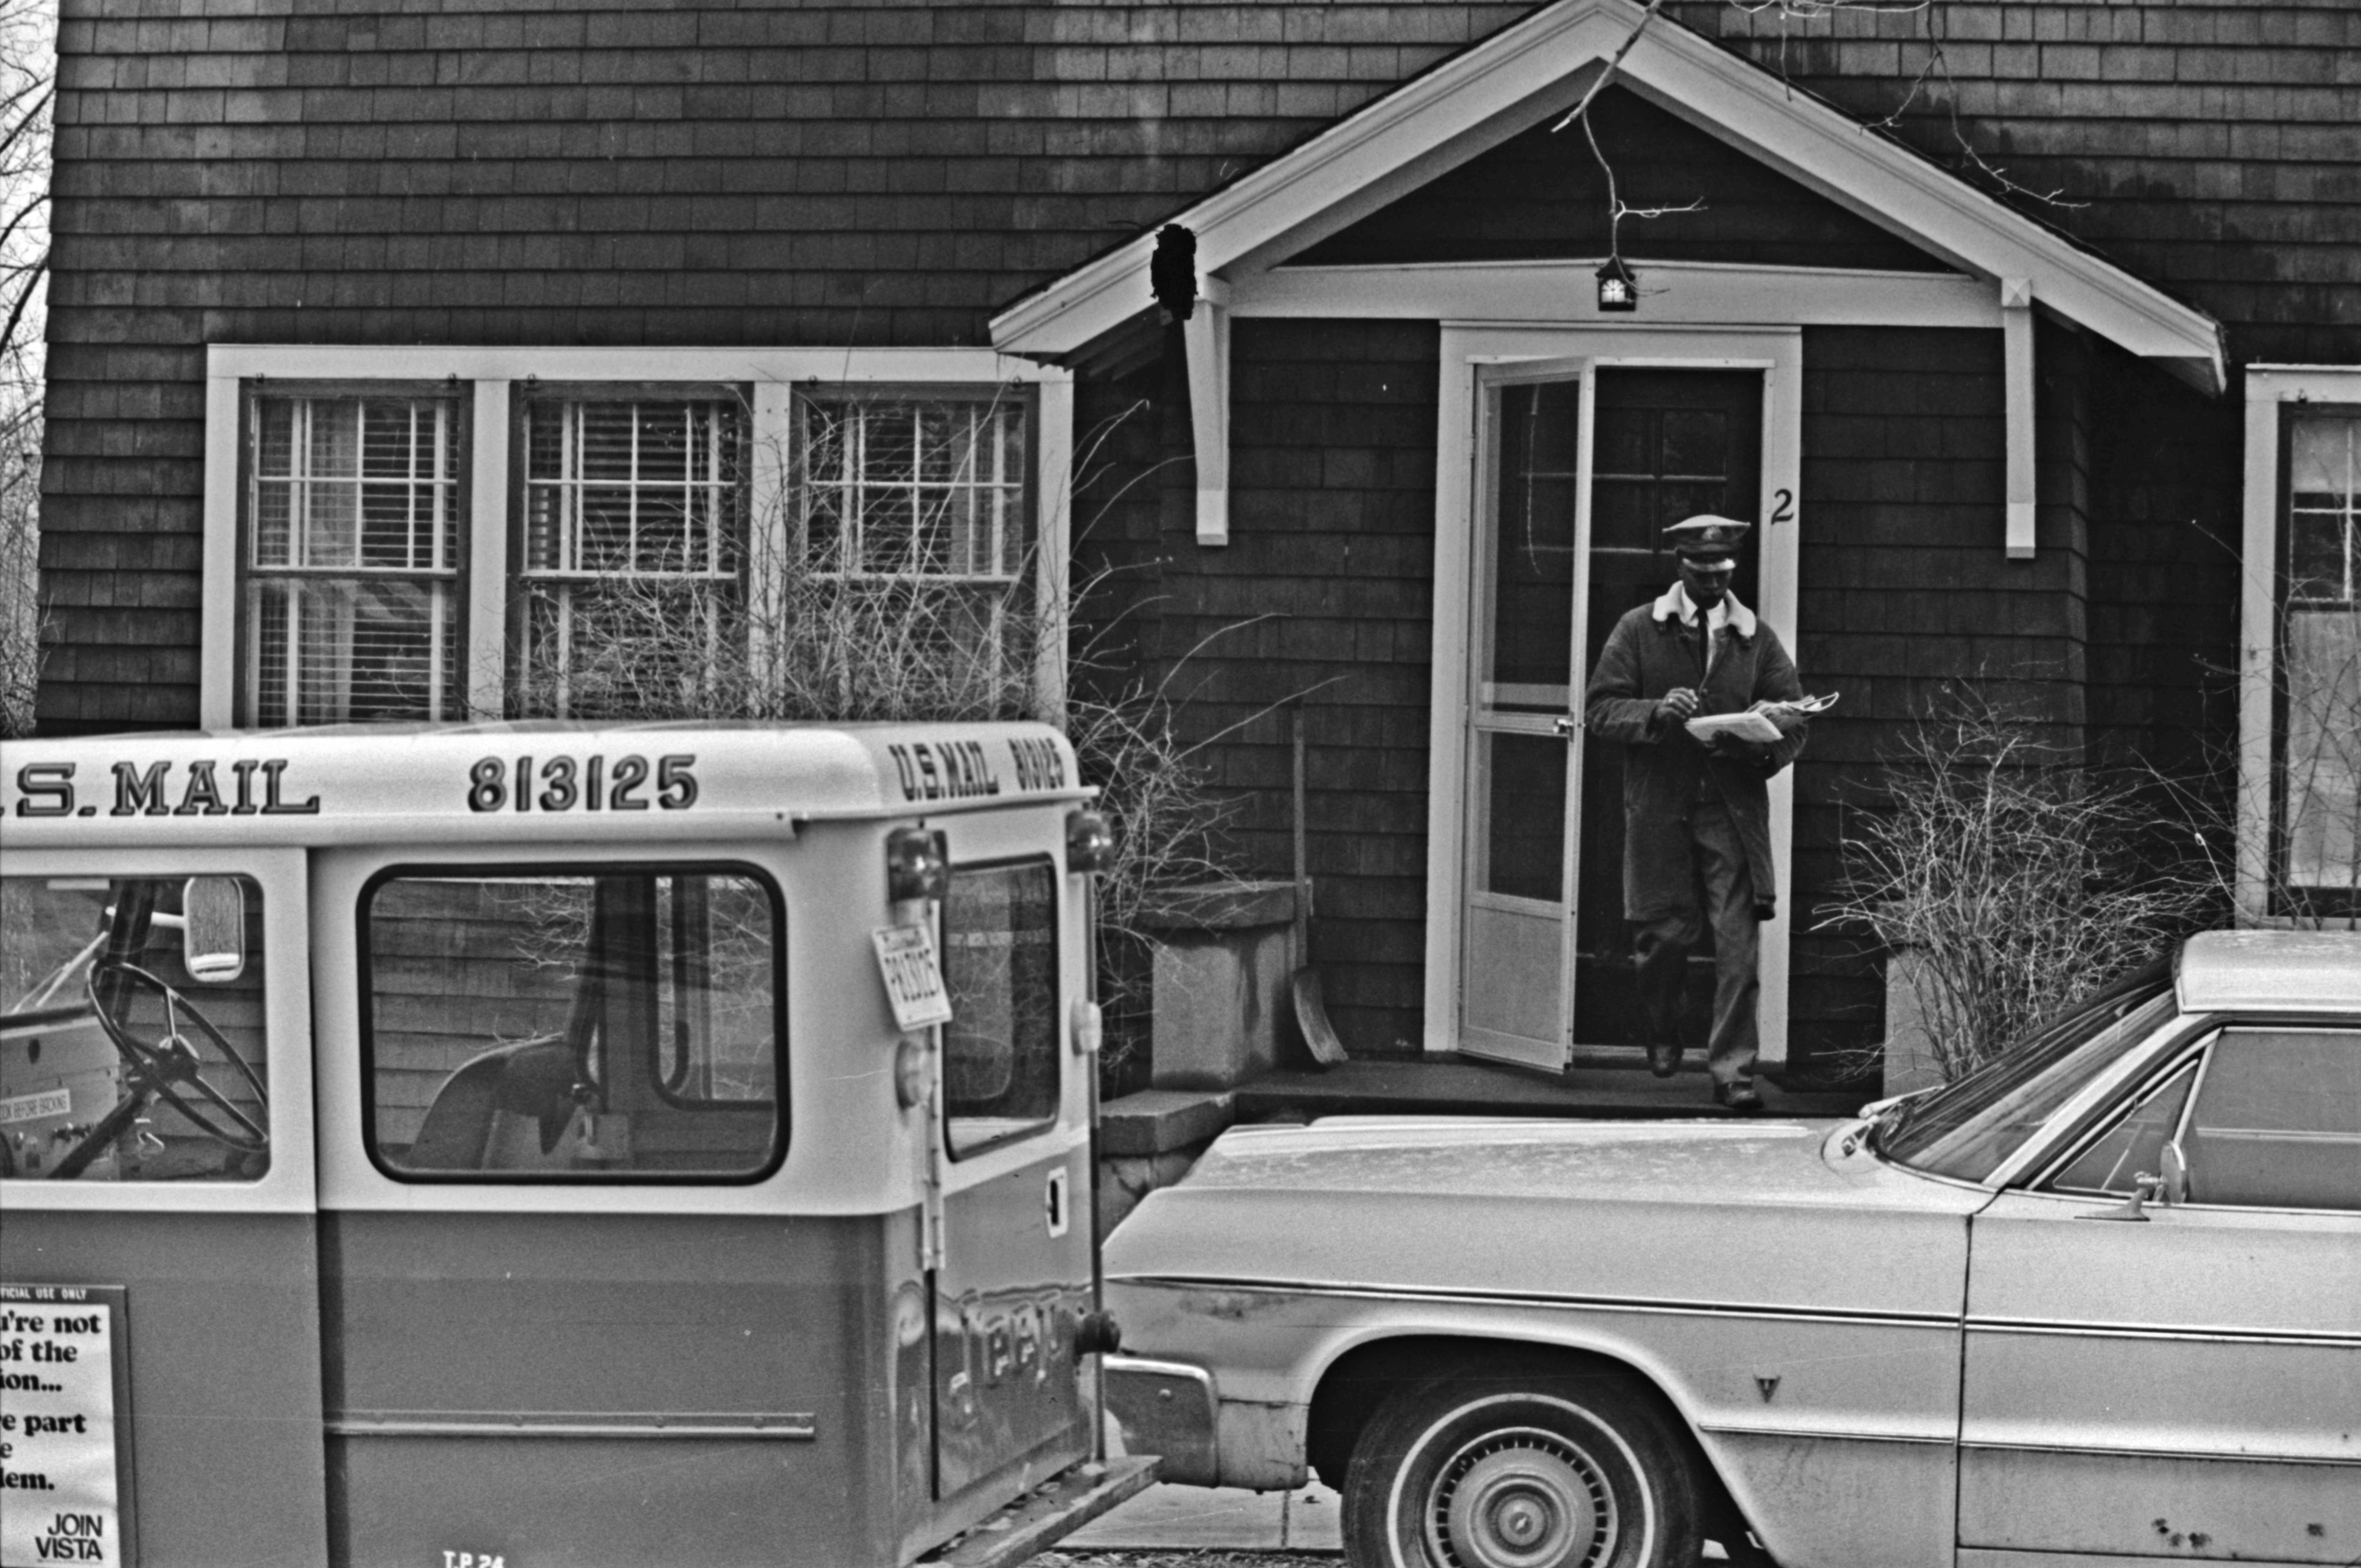 Mail Carrier Jimmie Green Back at Work after Mail Carrier Strike, March 1970 image